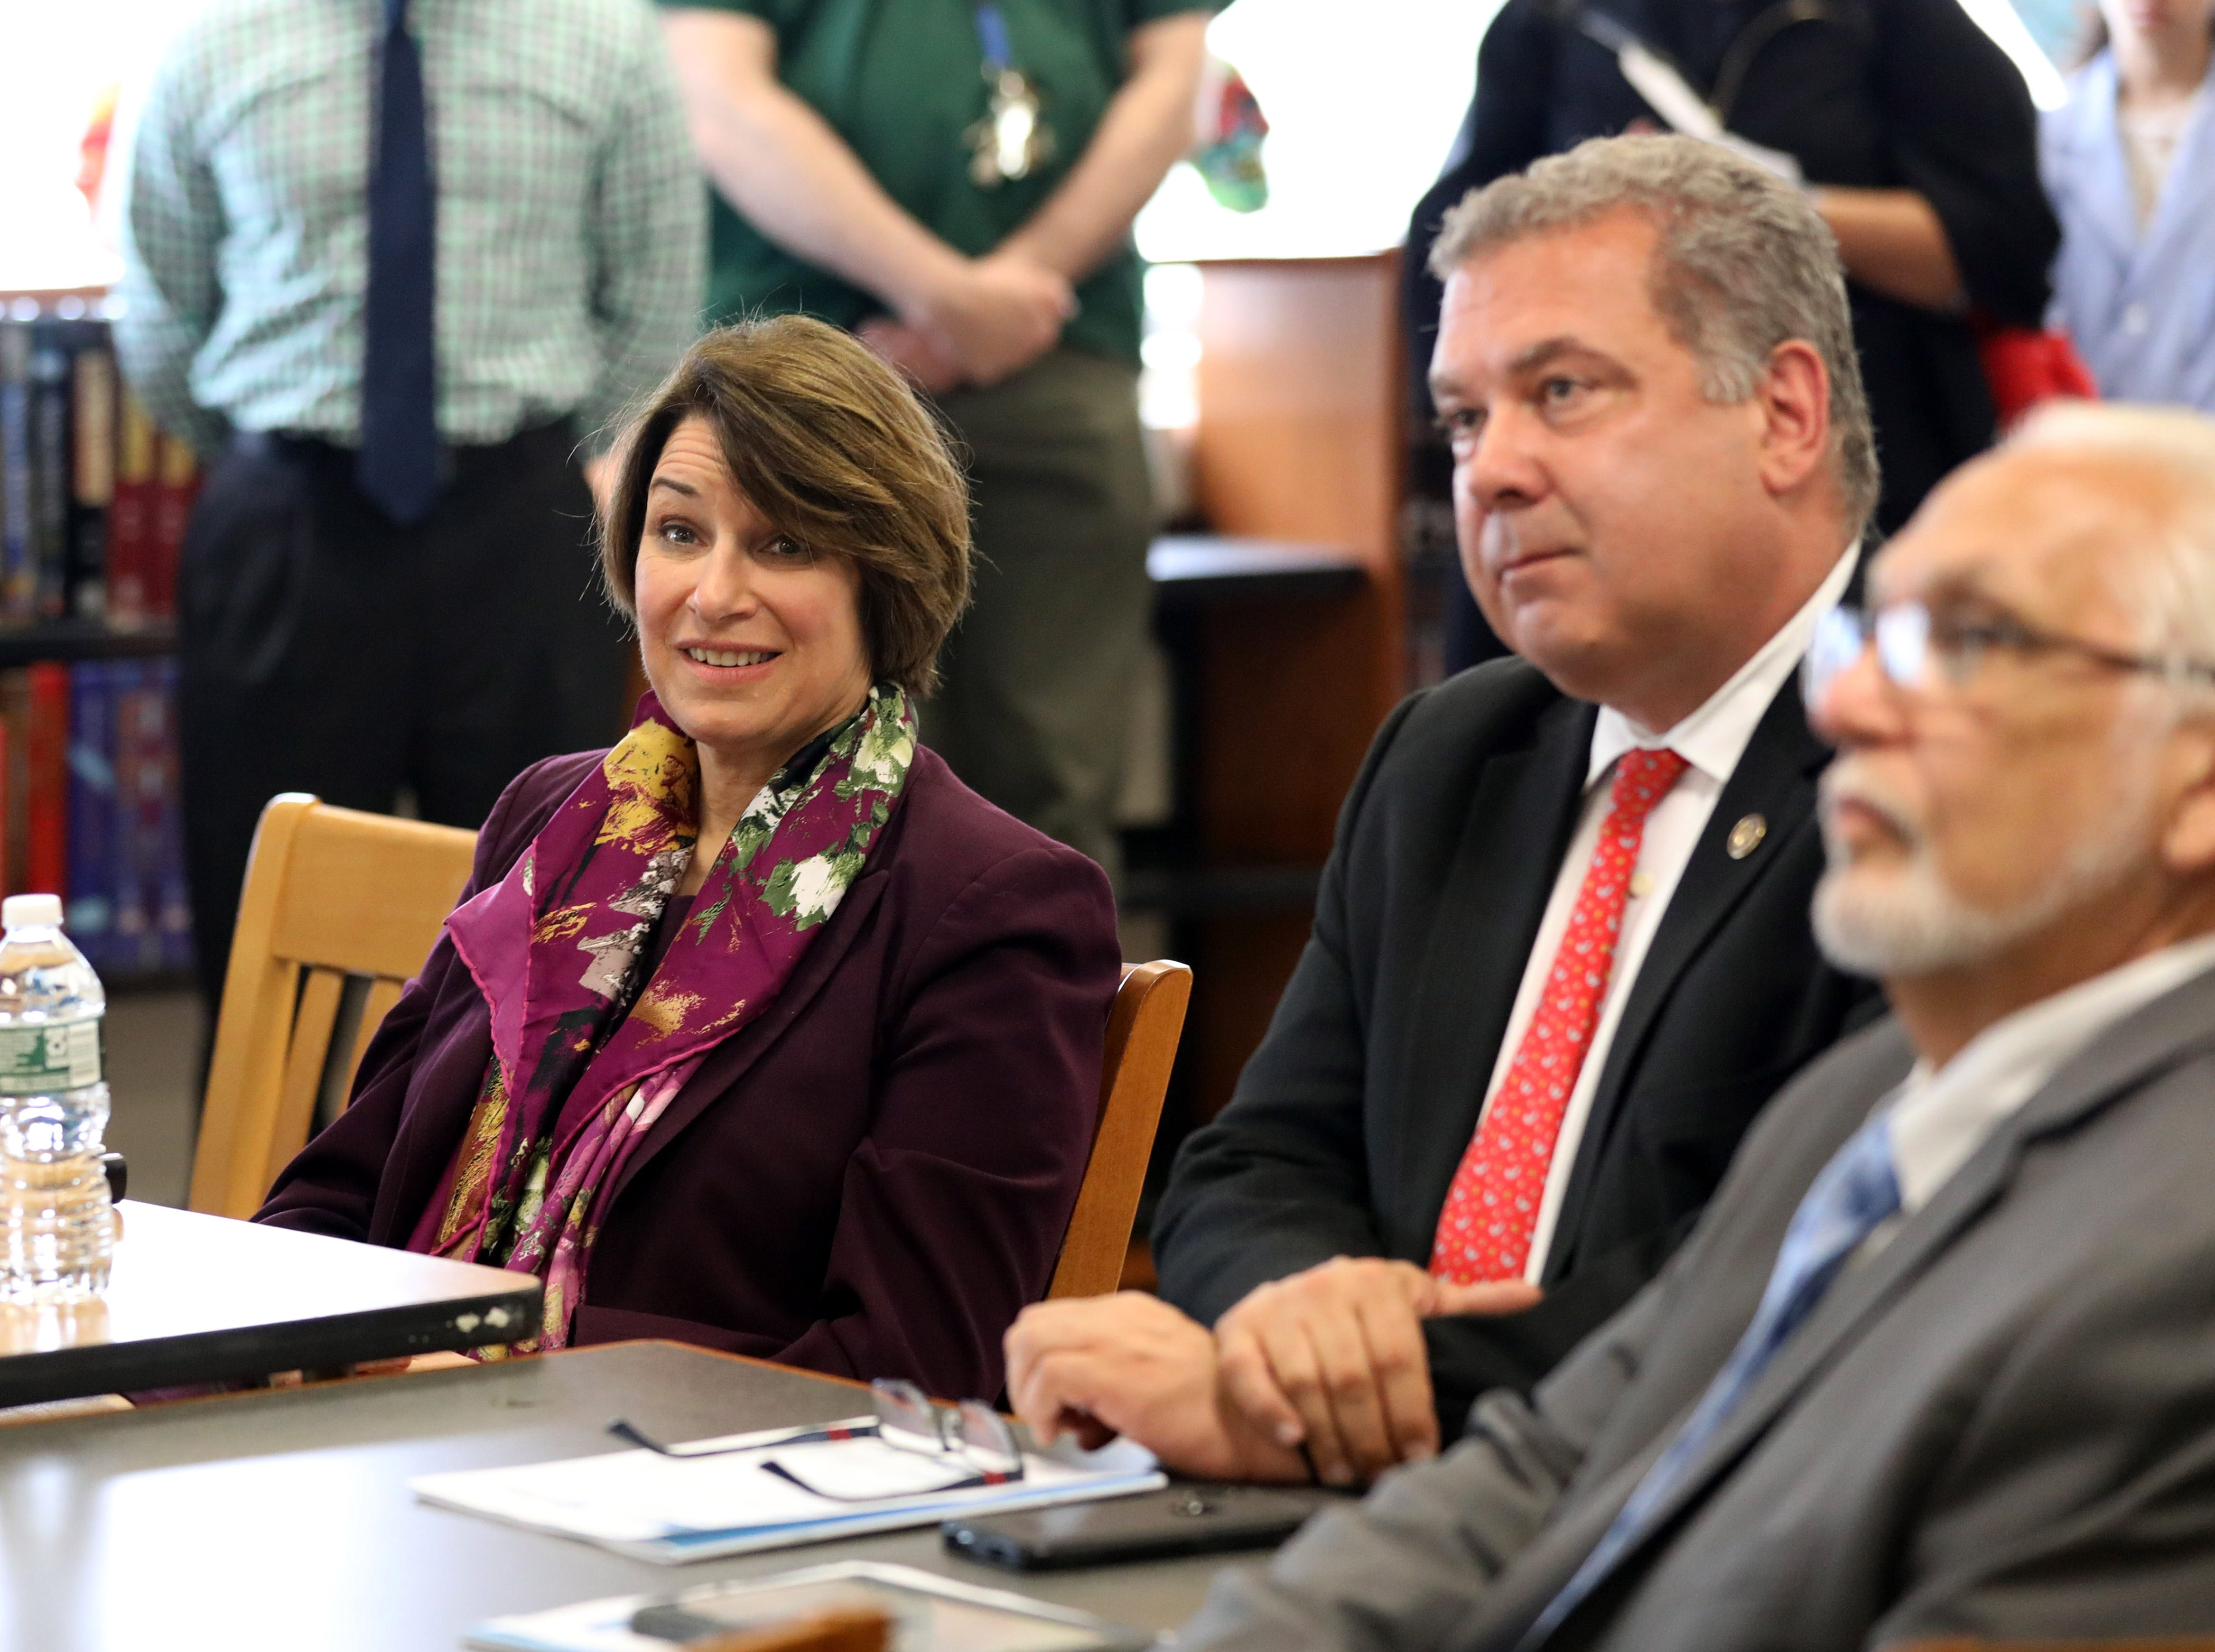 Randi Weingarten, left, the president of the American Federation of Teachers; U.S. Sen. Amy Klobuchar (D-Minn.), a Democratic presidential candidate; Yonkers Mayor Mike Spano and Rev. Steve Lopez, the President of the Yonkers Board of Education, attend a school tour at Gorton High School in Yonkers, May 10, 2019.